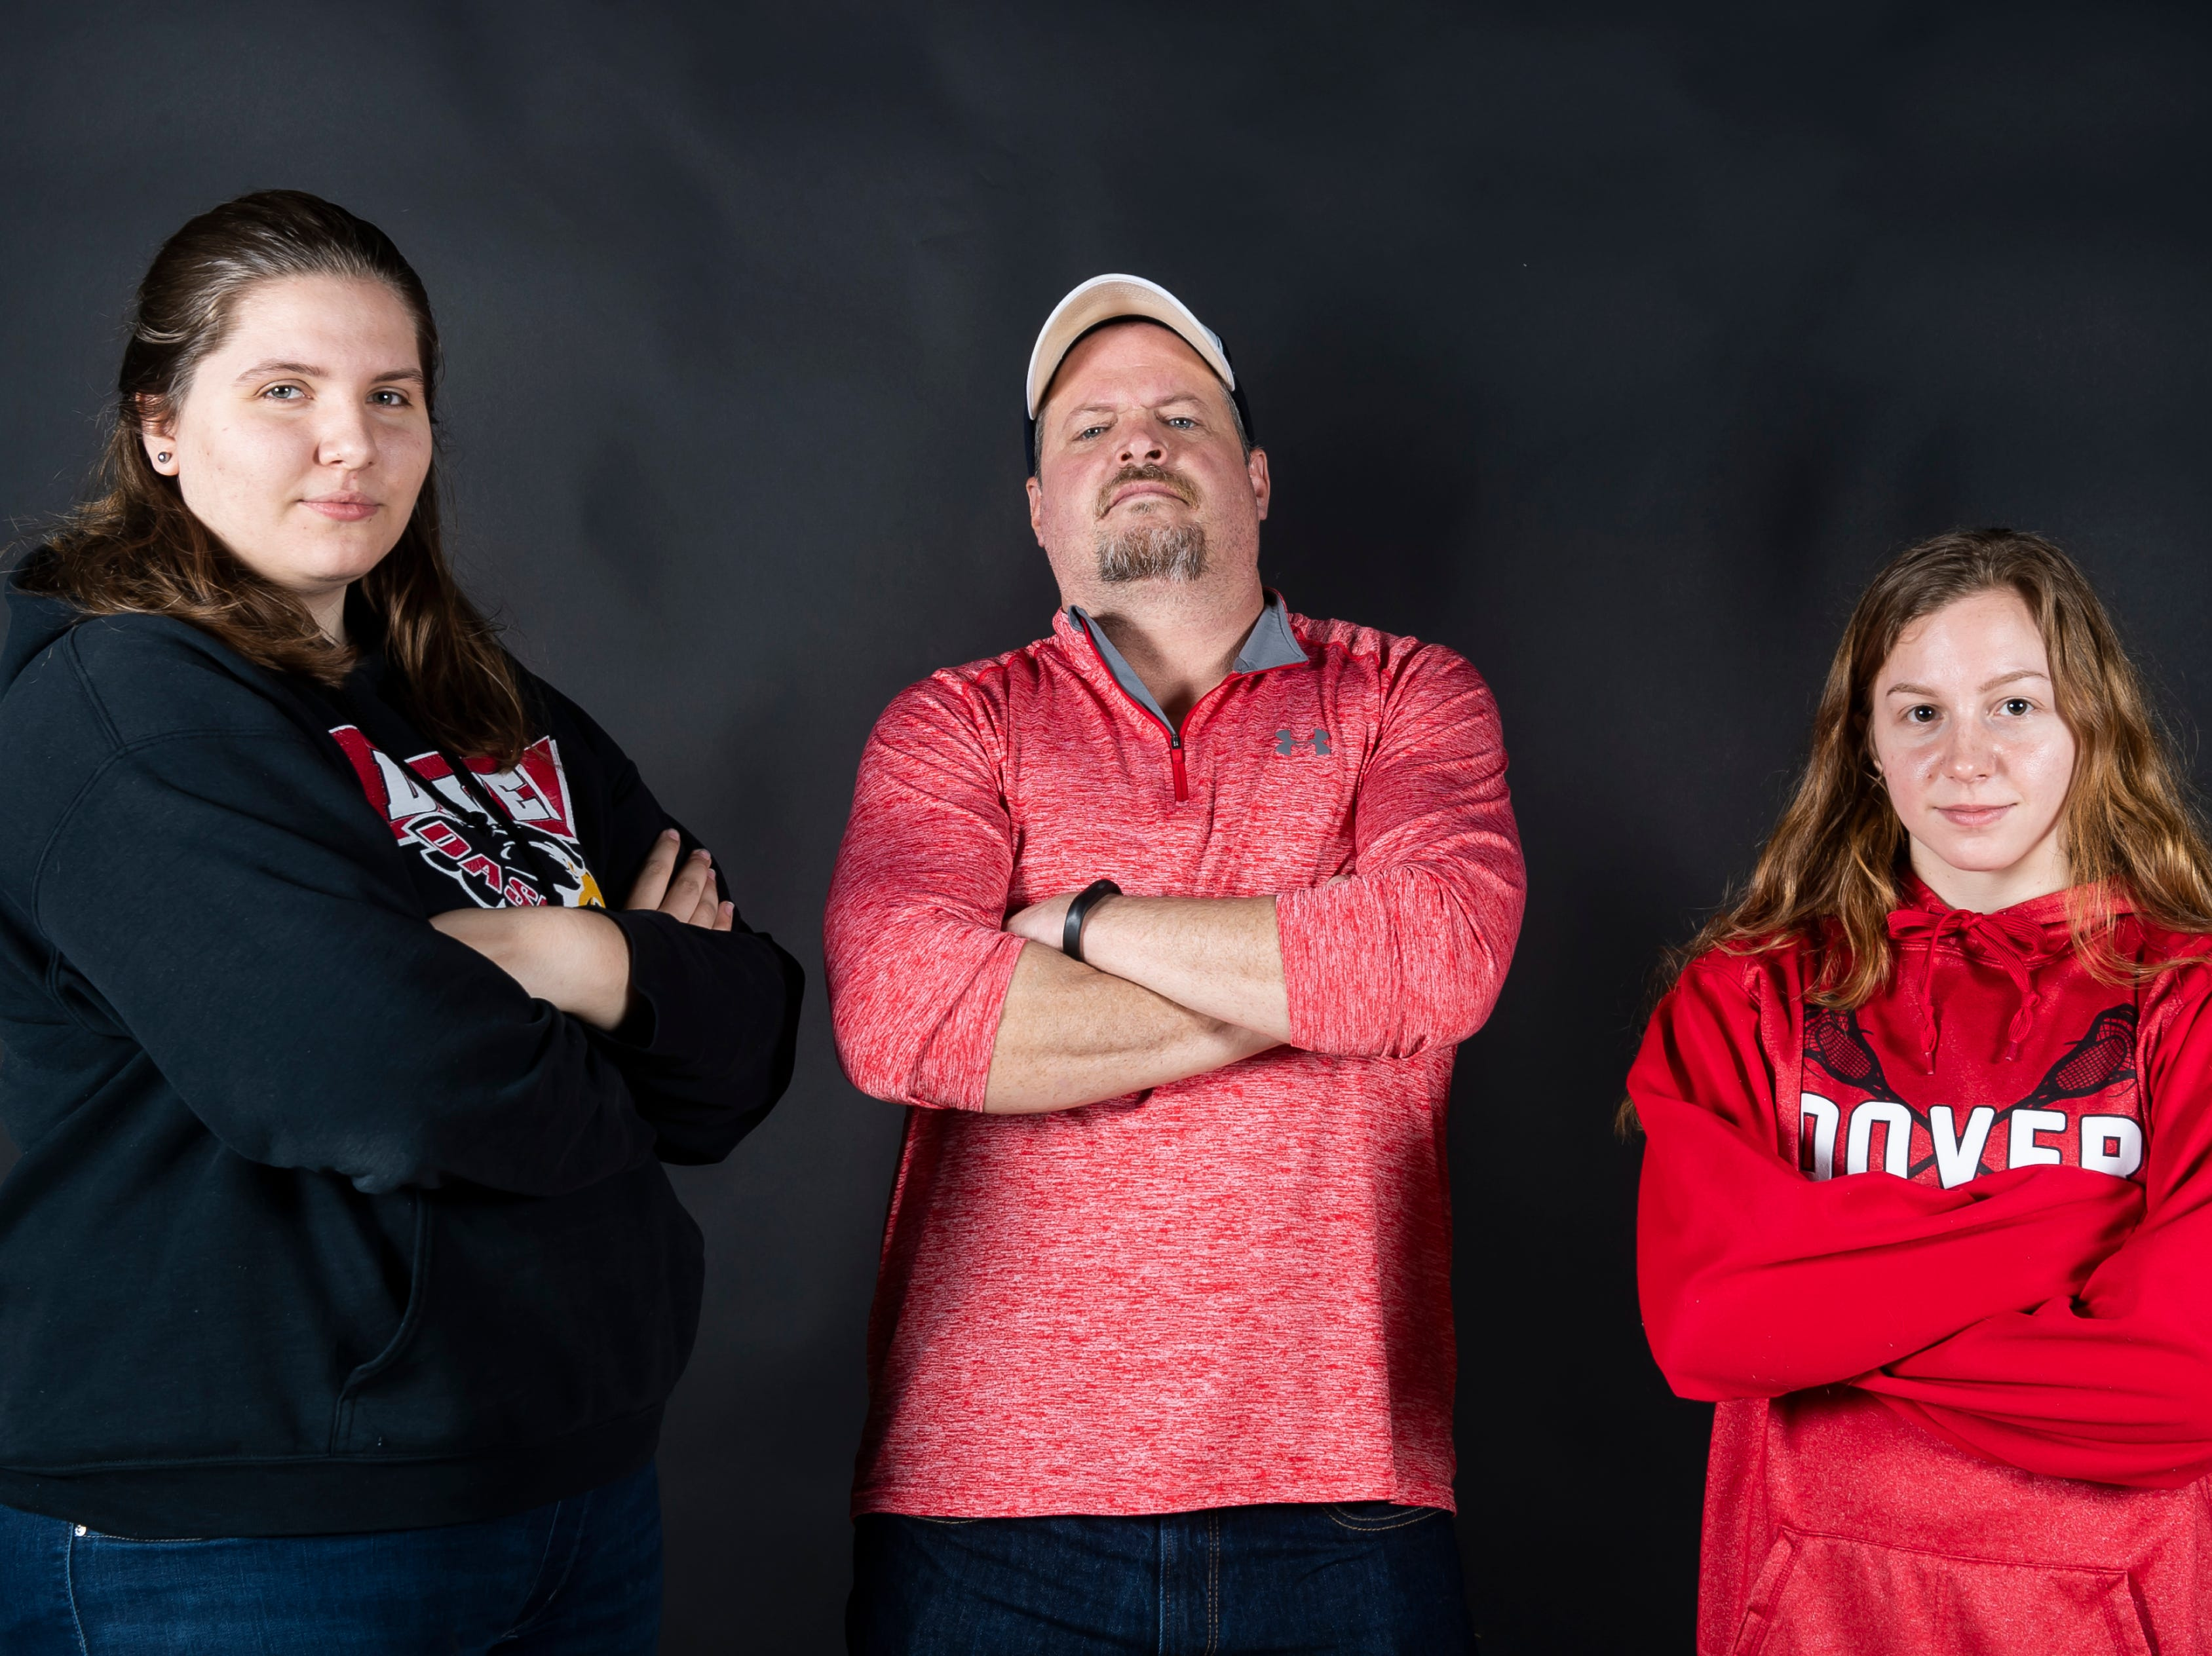 (From left) Dover lacrosse player Katie Sweitzer, coach Bryan Gamble and player Paige Lantz pose in the GameTimePA photo booth during spring sports media day in York Sunday, March 10, 2019.